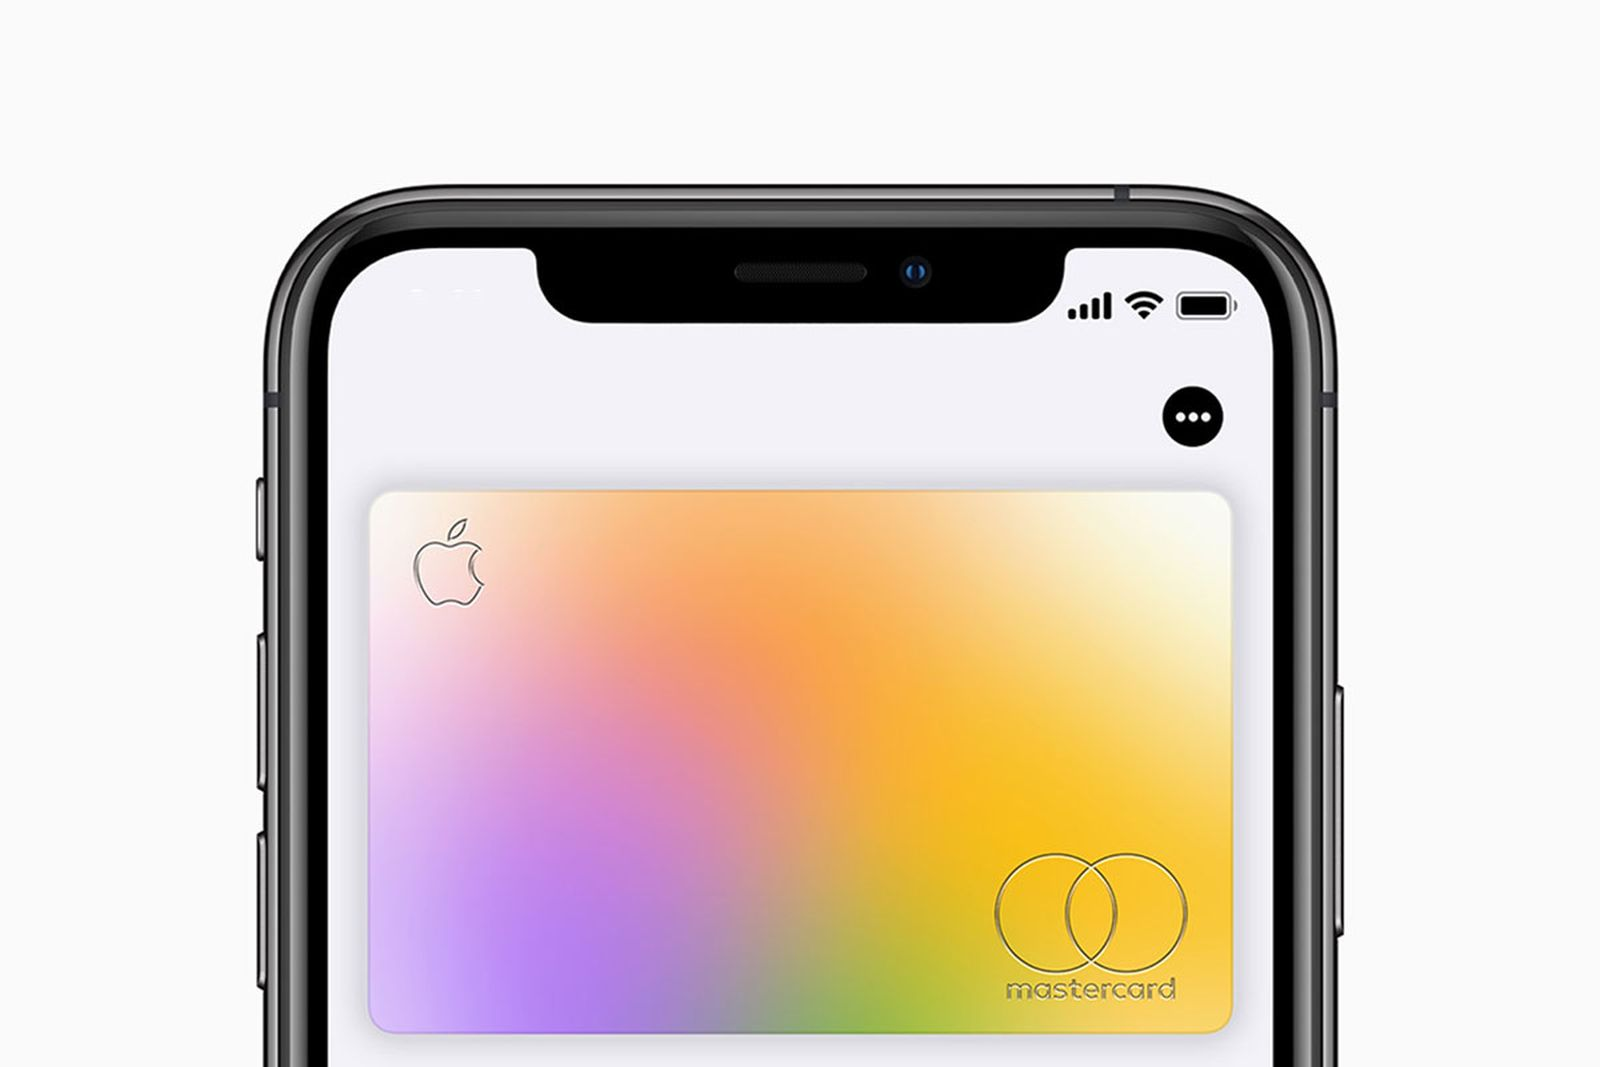 apple card august launch